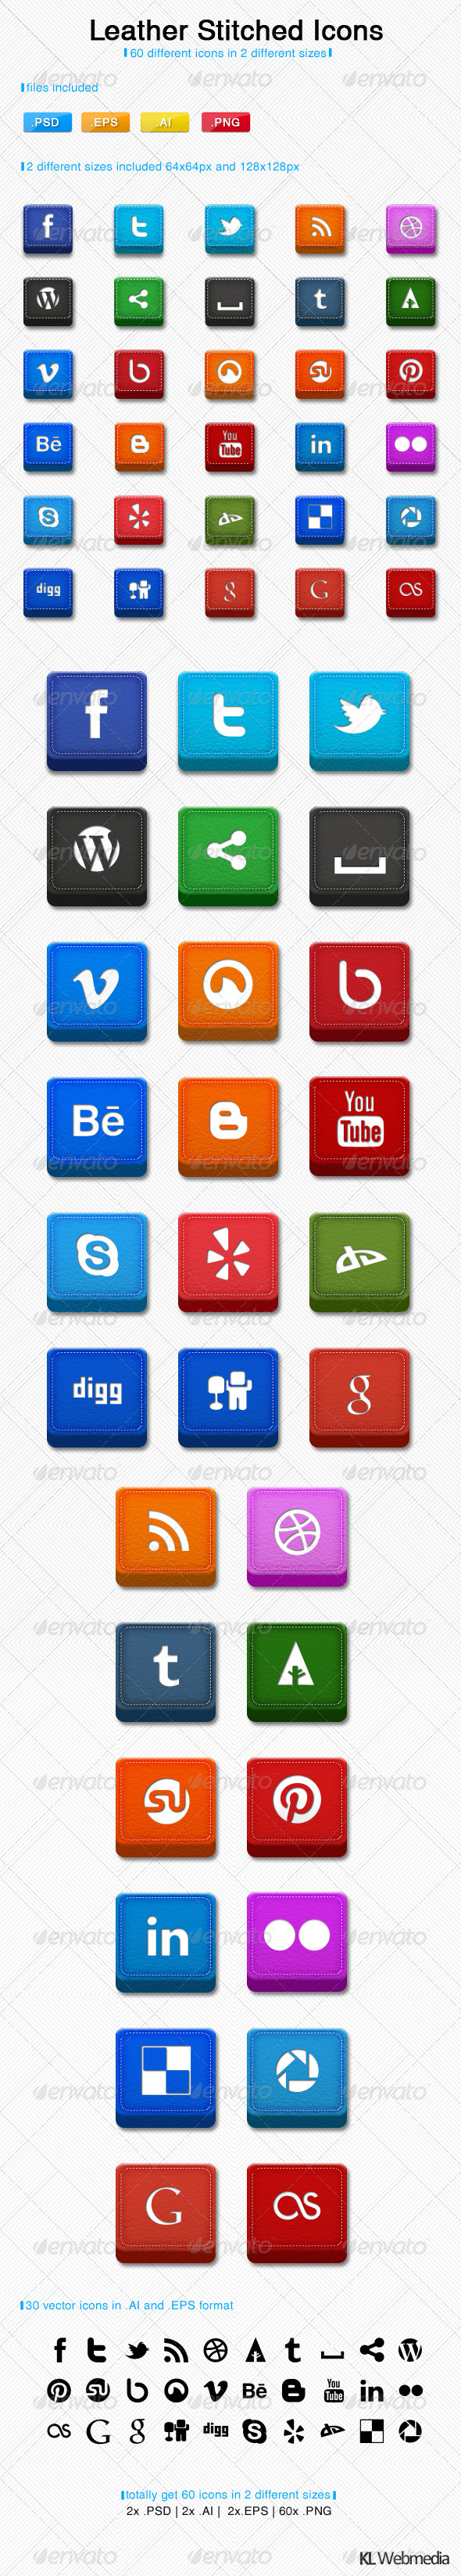 GraphicRiver Leather Stitched Social Icons 3035833